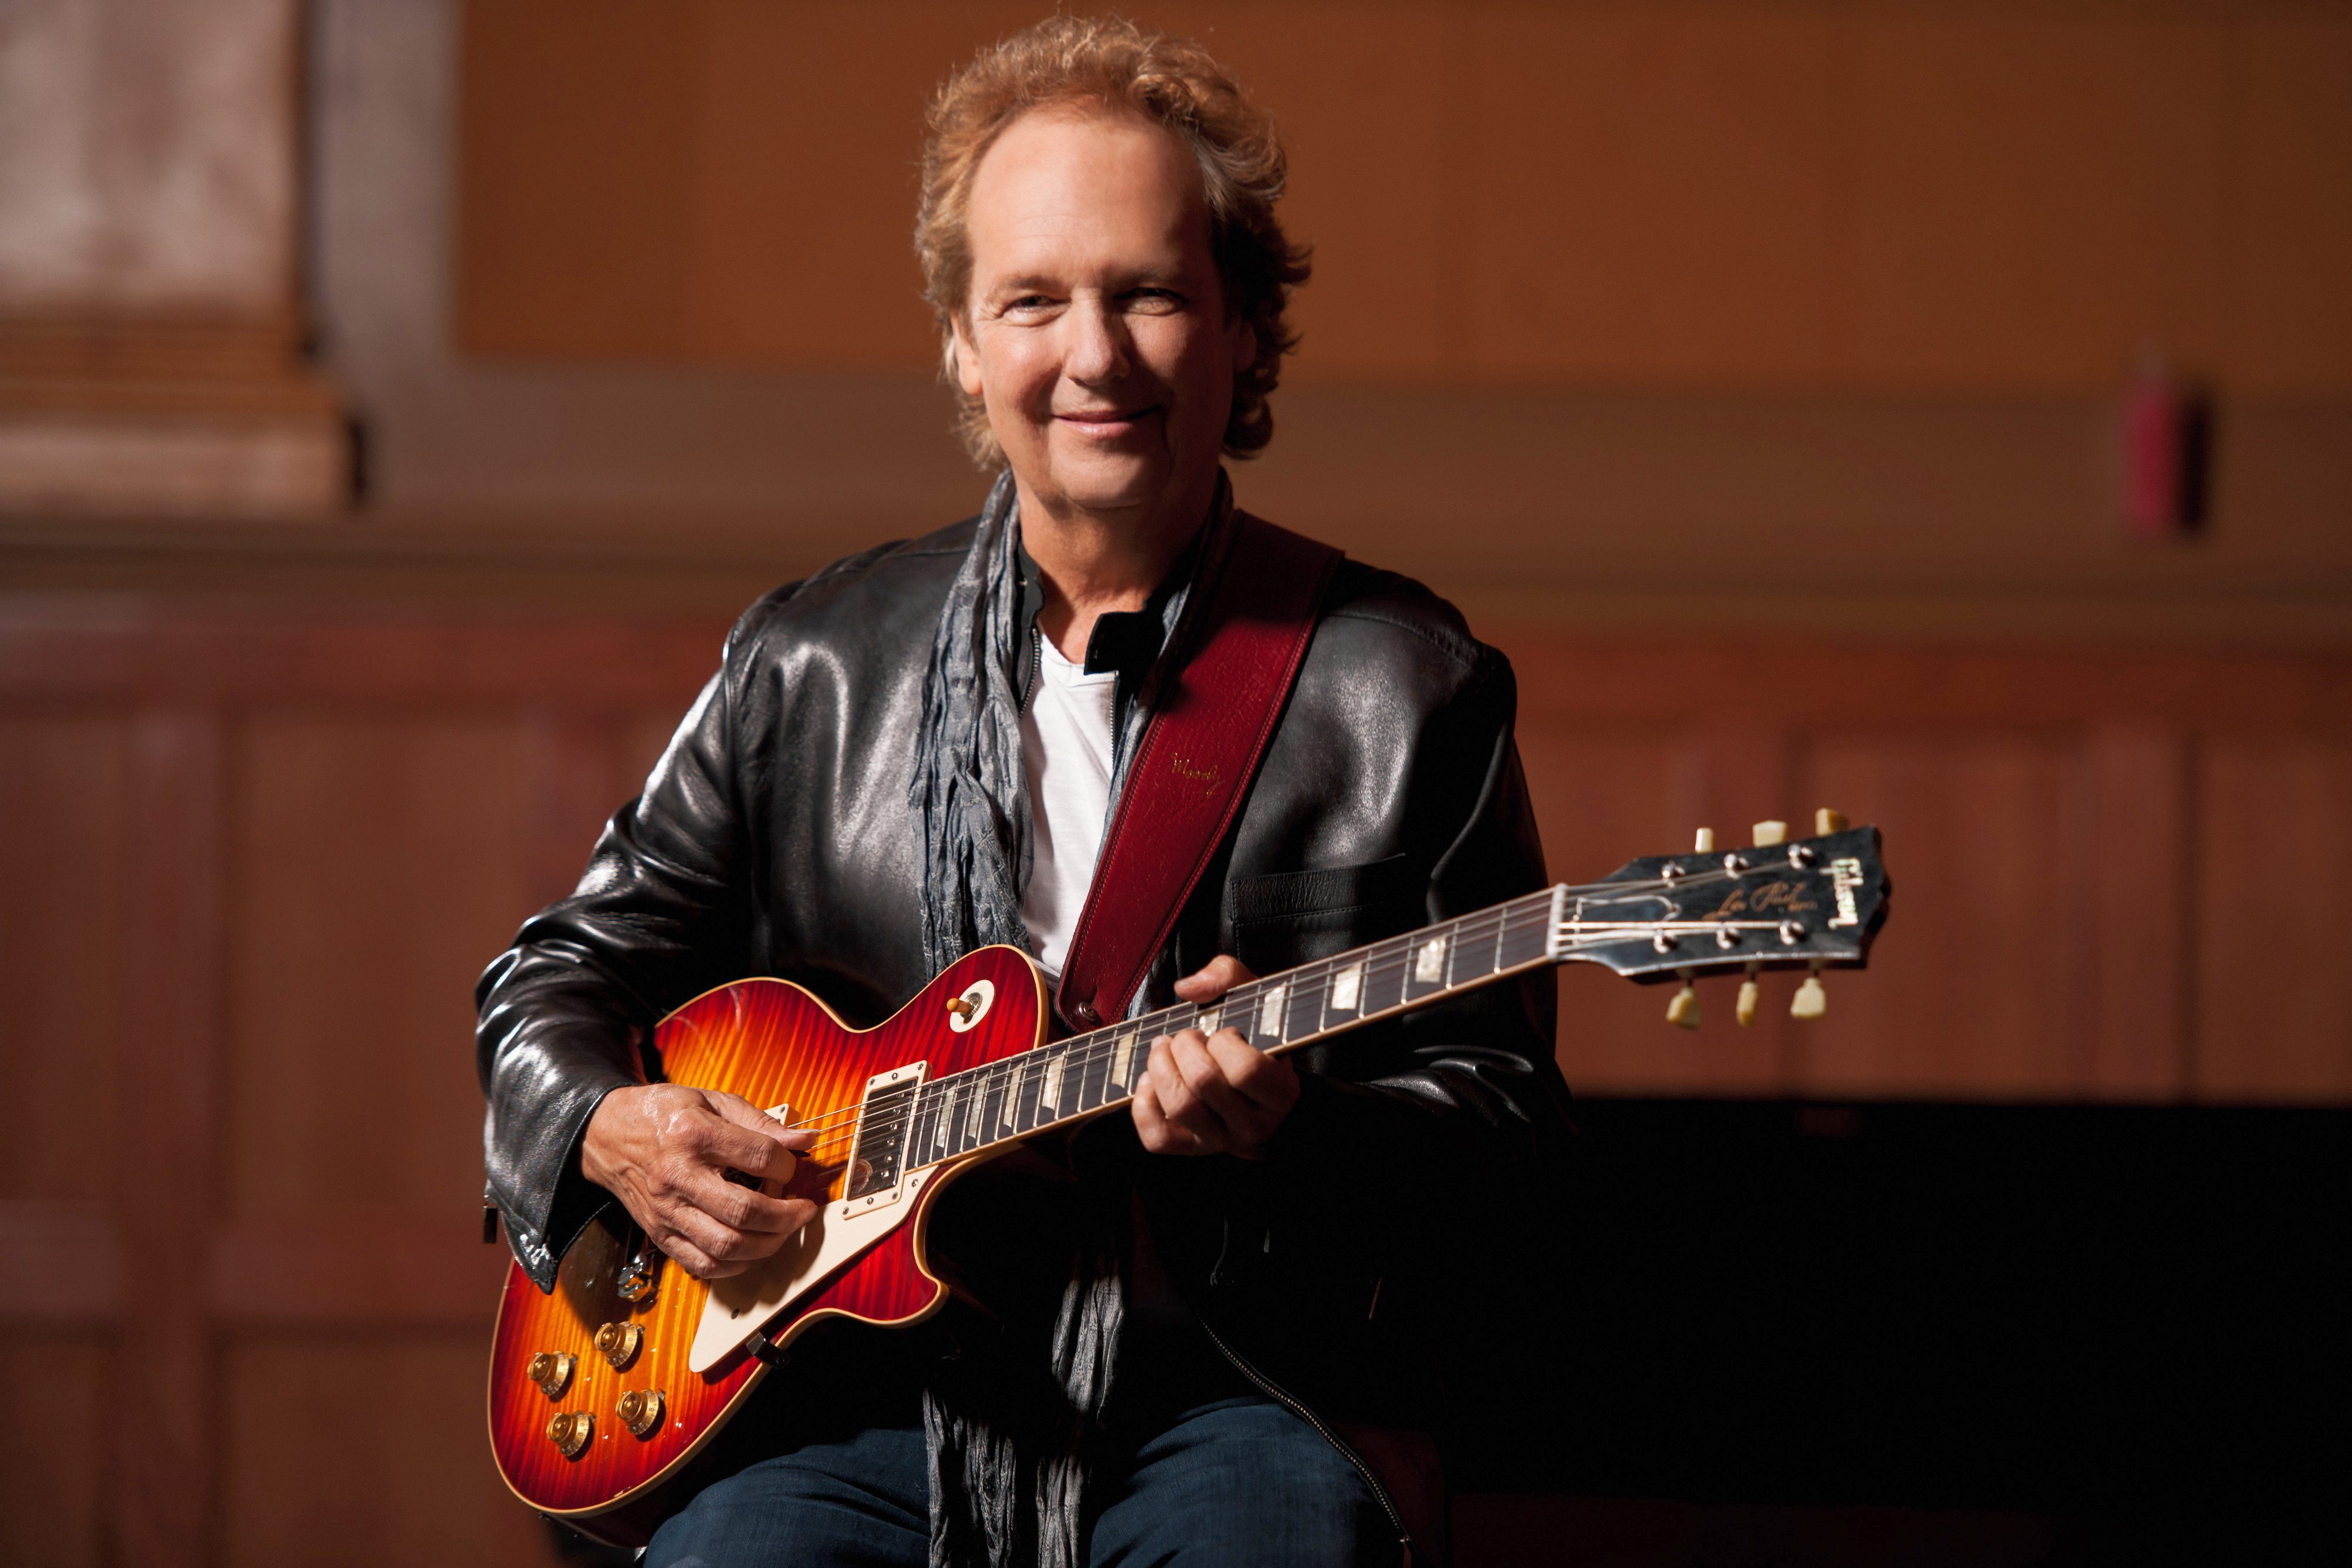 Lee Ritenour in Springfield, MO